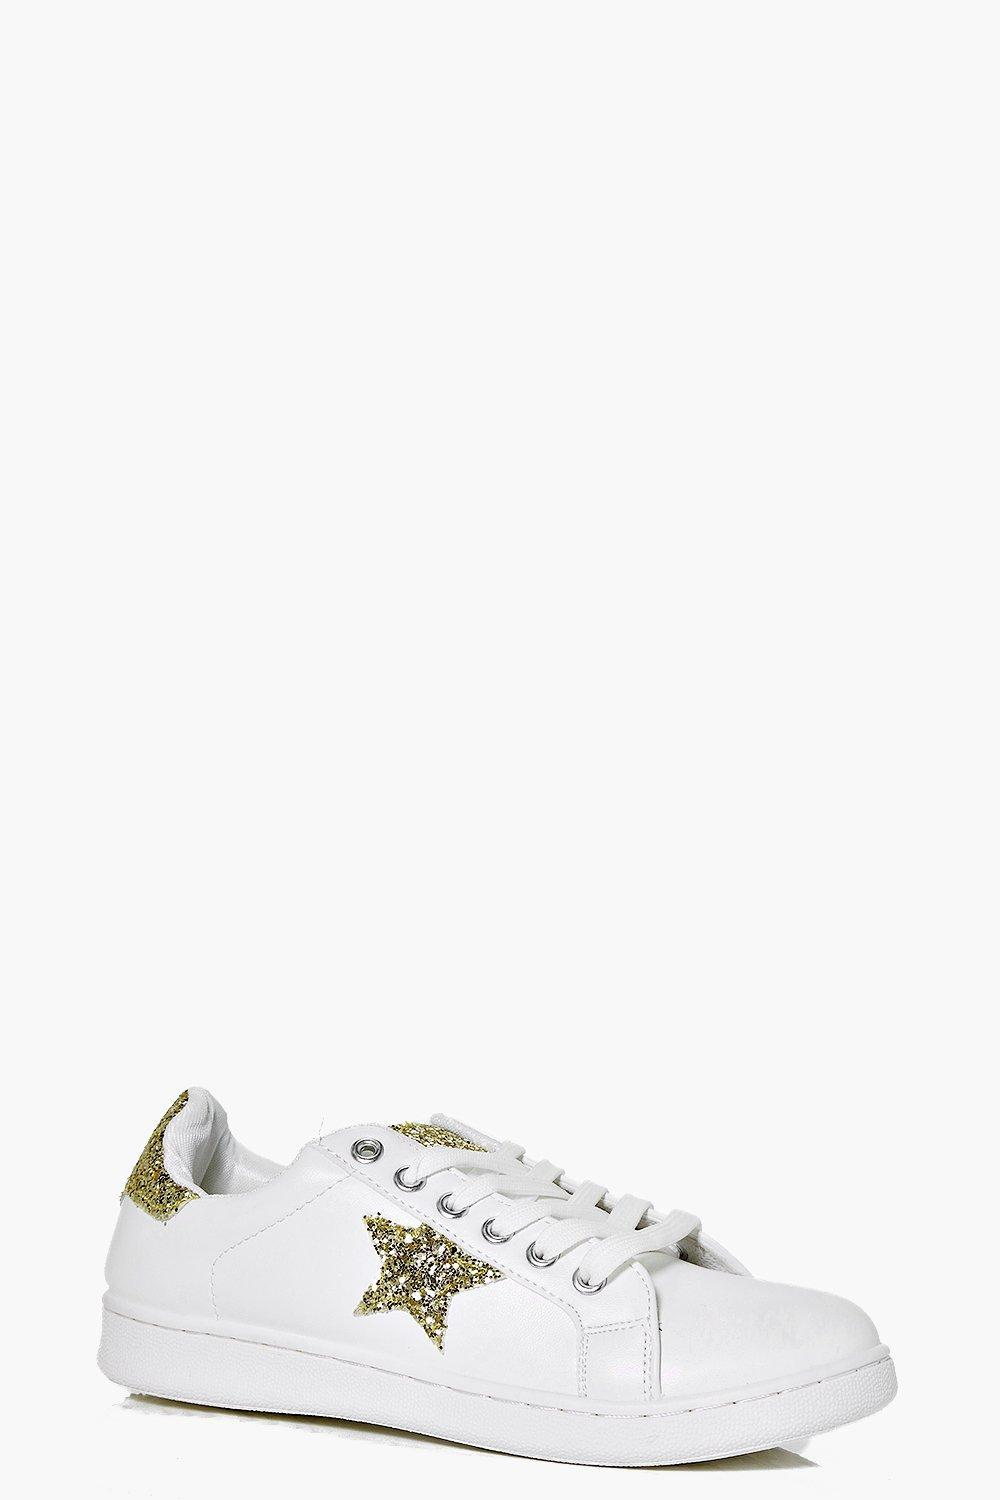 Star Detail Lace Up Trainer Gold - secondary colour: white; predominant colour: gold; occasions: casual; material: faux leather; heel height: flat; toe: round toe; style: trainers; finish: plain; pattern: patterned/print; season: s/s 2016; wardrobe: highlight